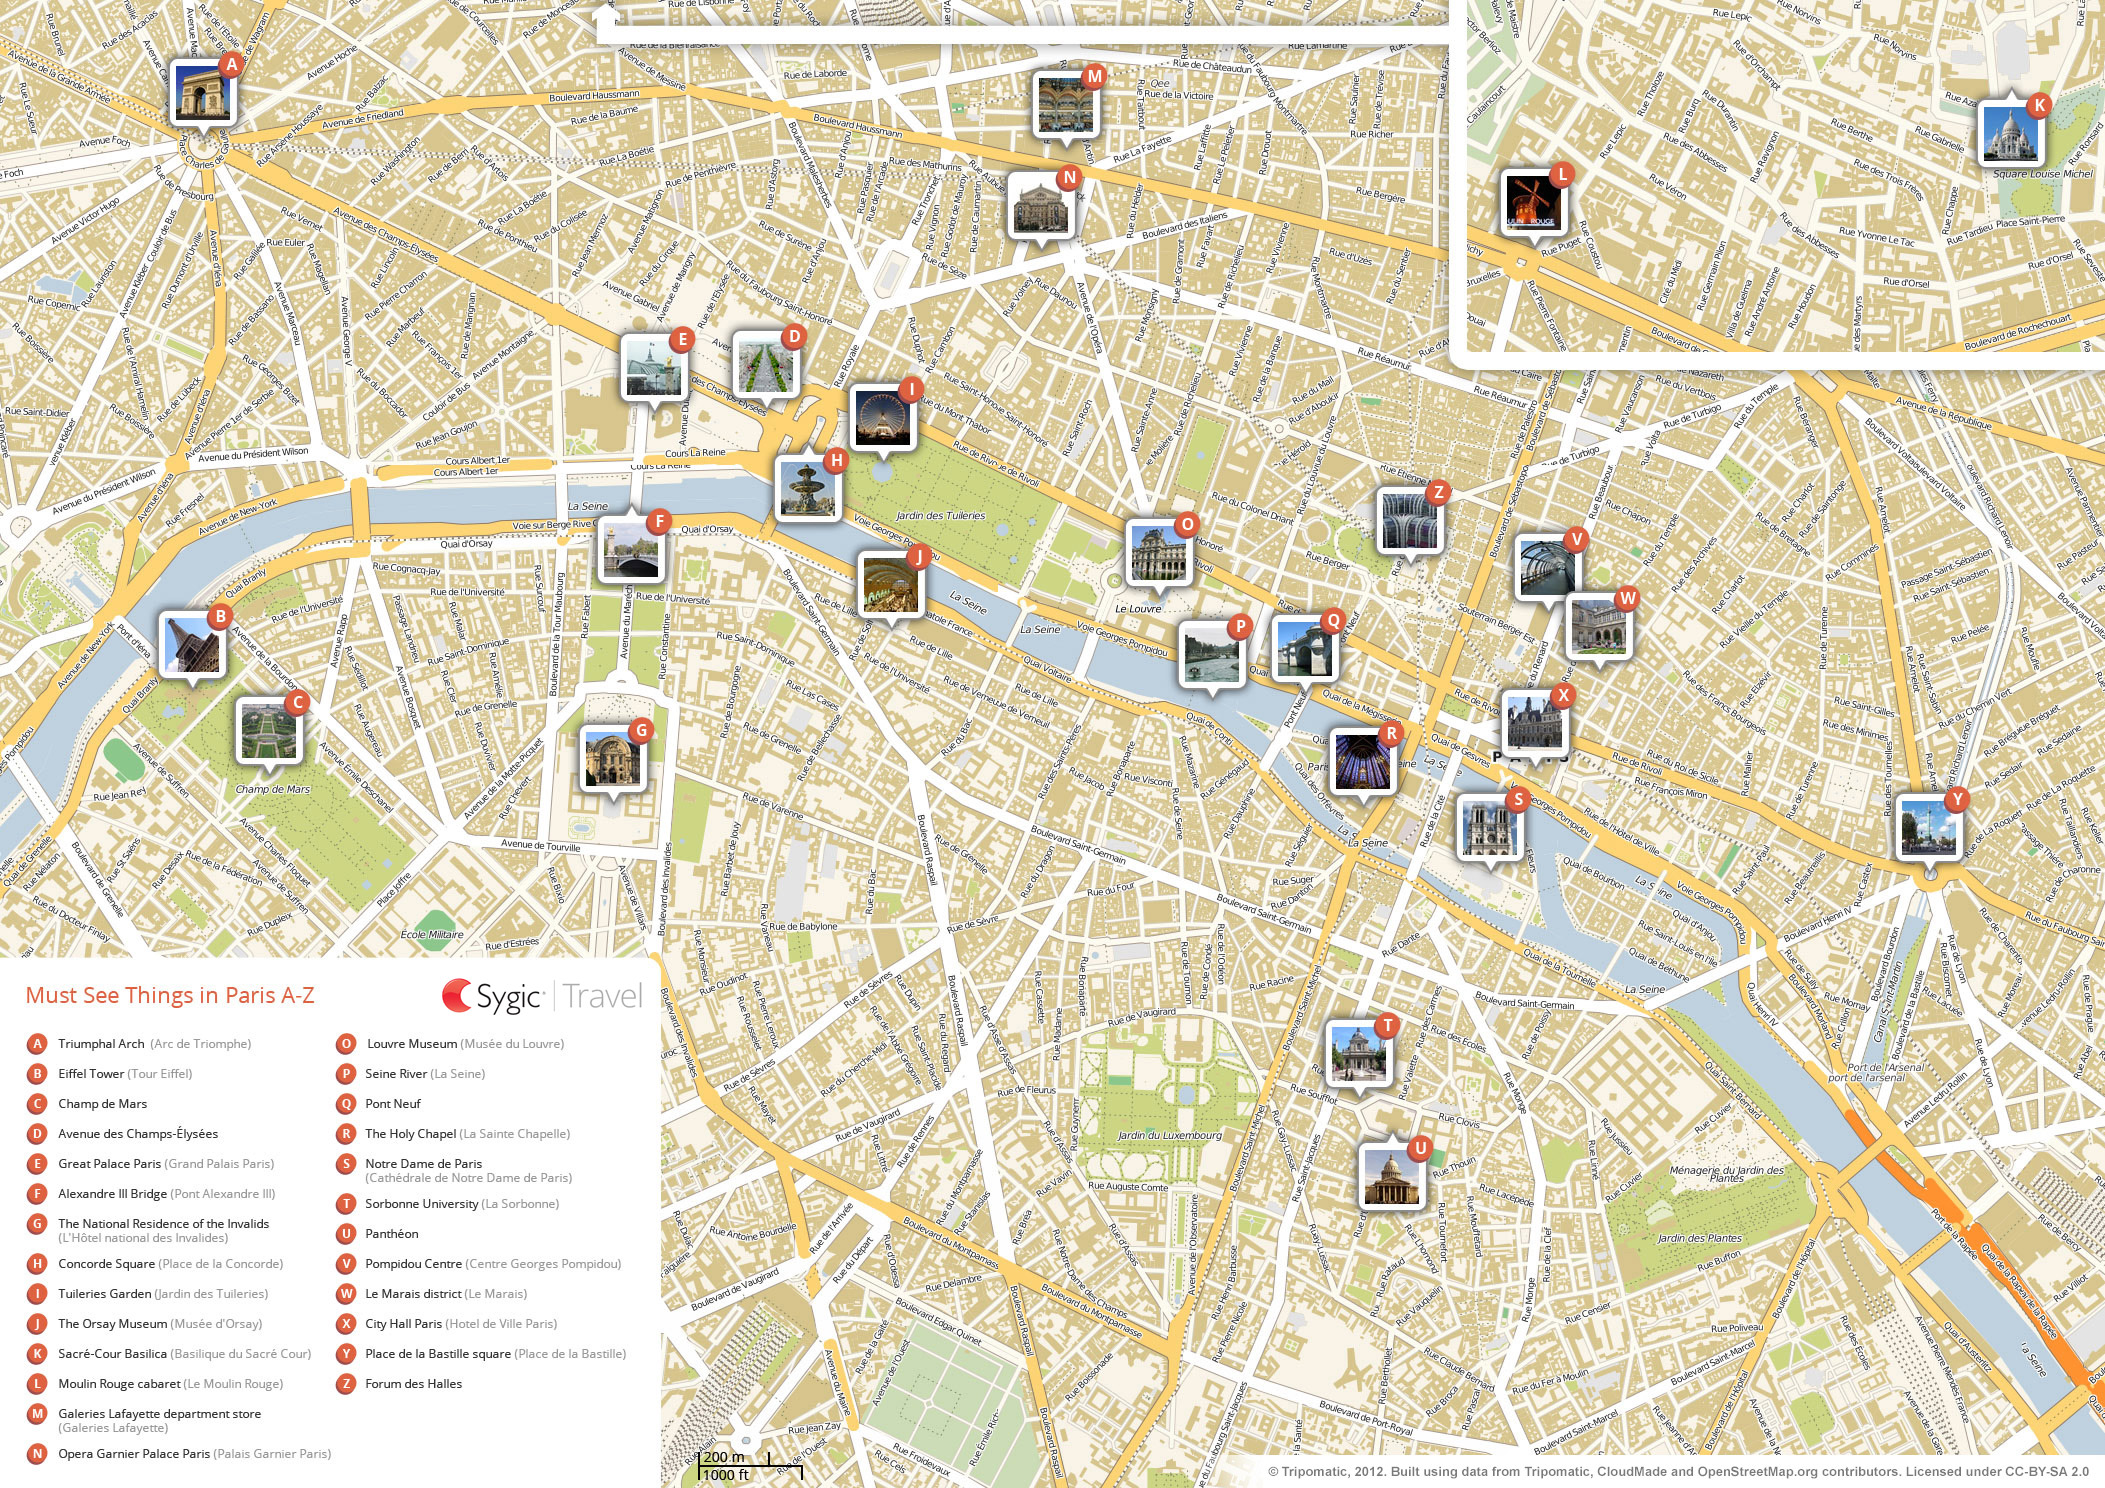 Paris Printable Tourist Map – Paris Tourist Attractions Map